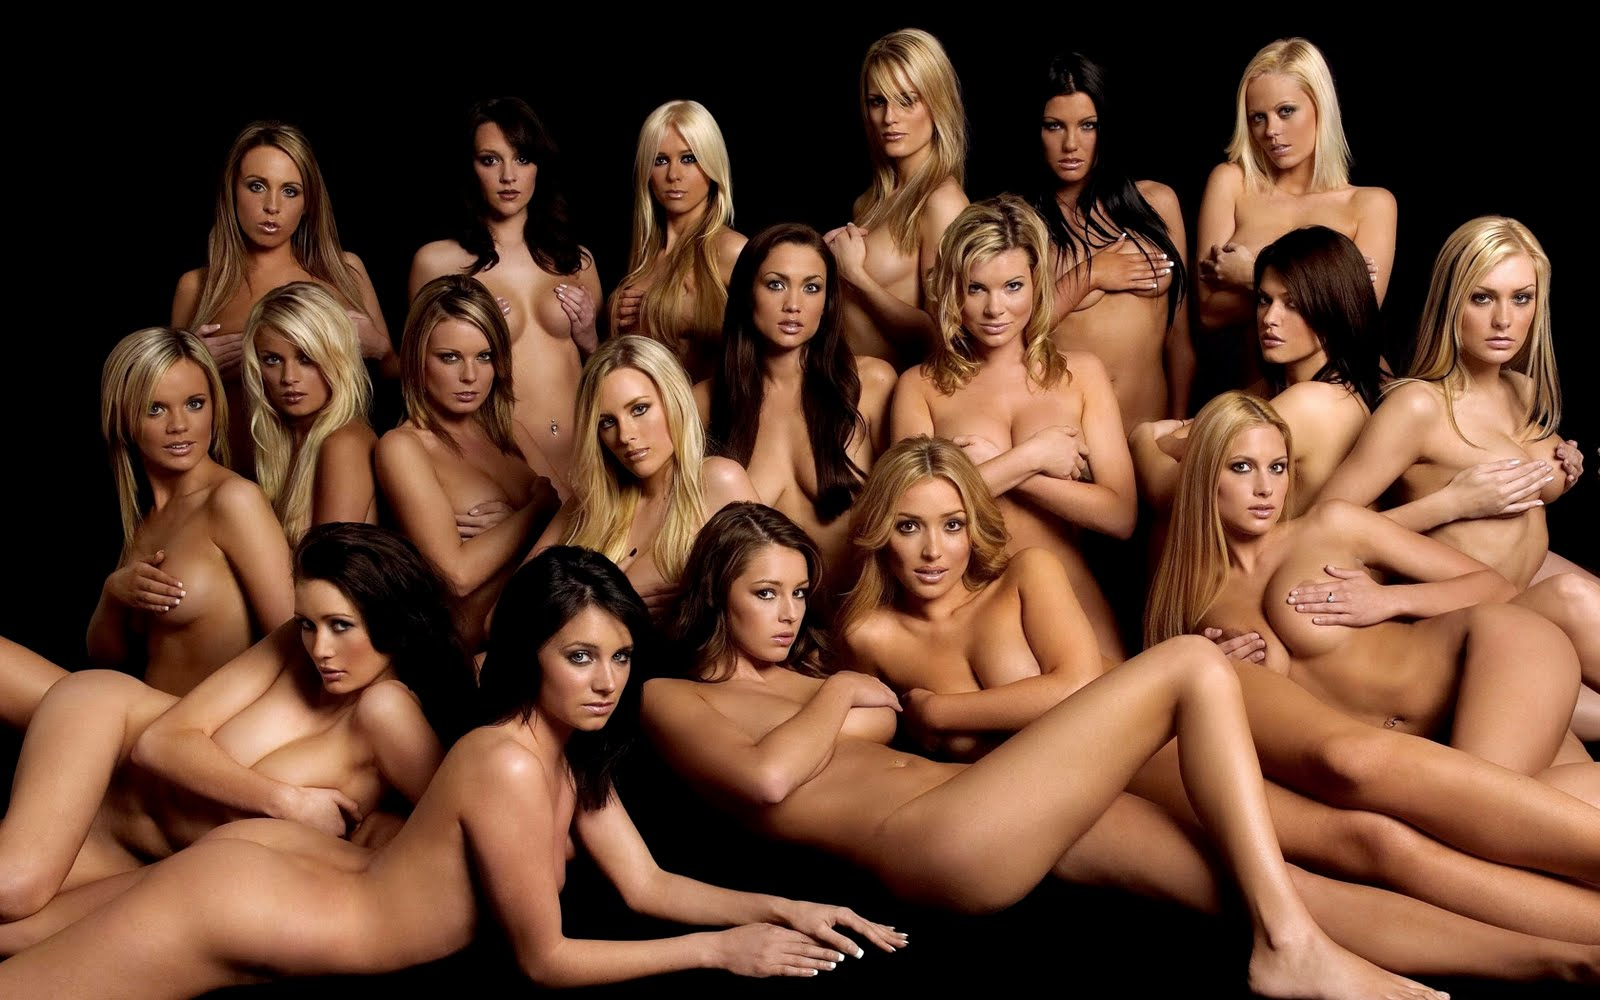 a lot of naked women